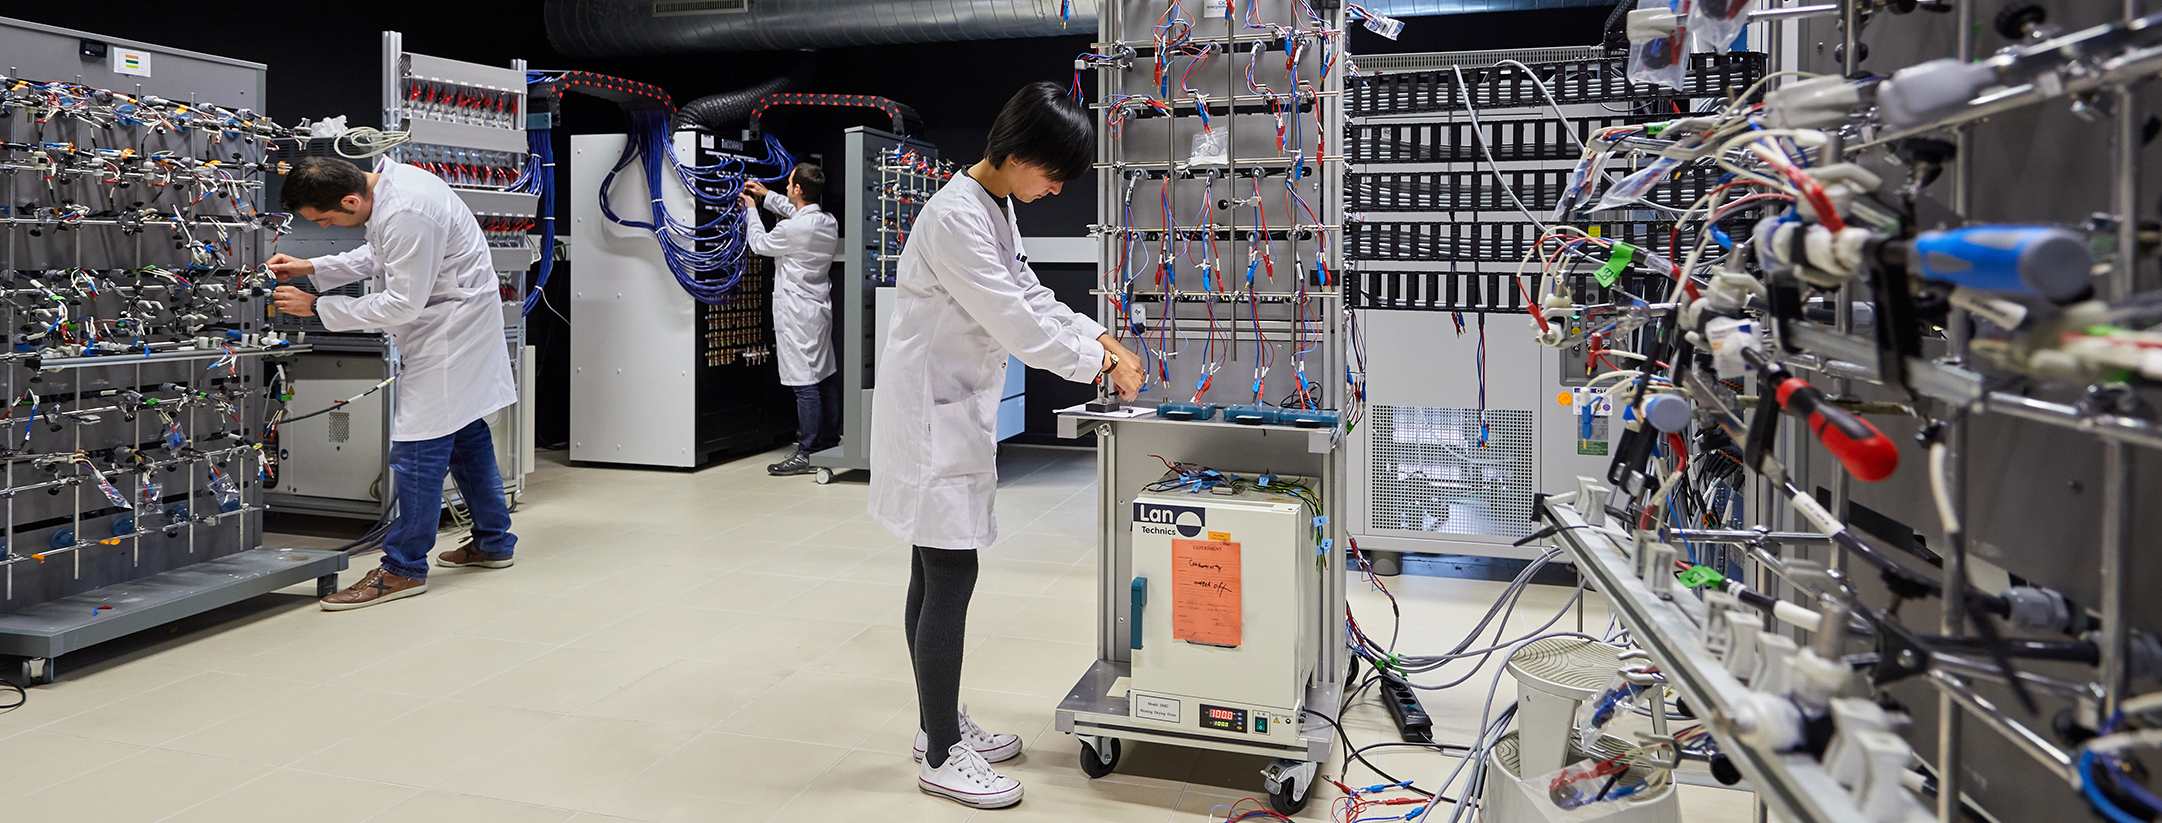 Electrochemical Testing laboratory for batteries and supercapacitors